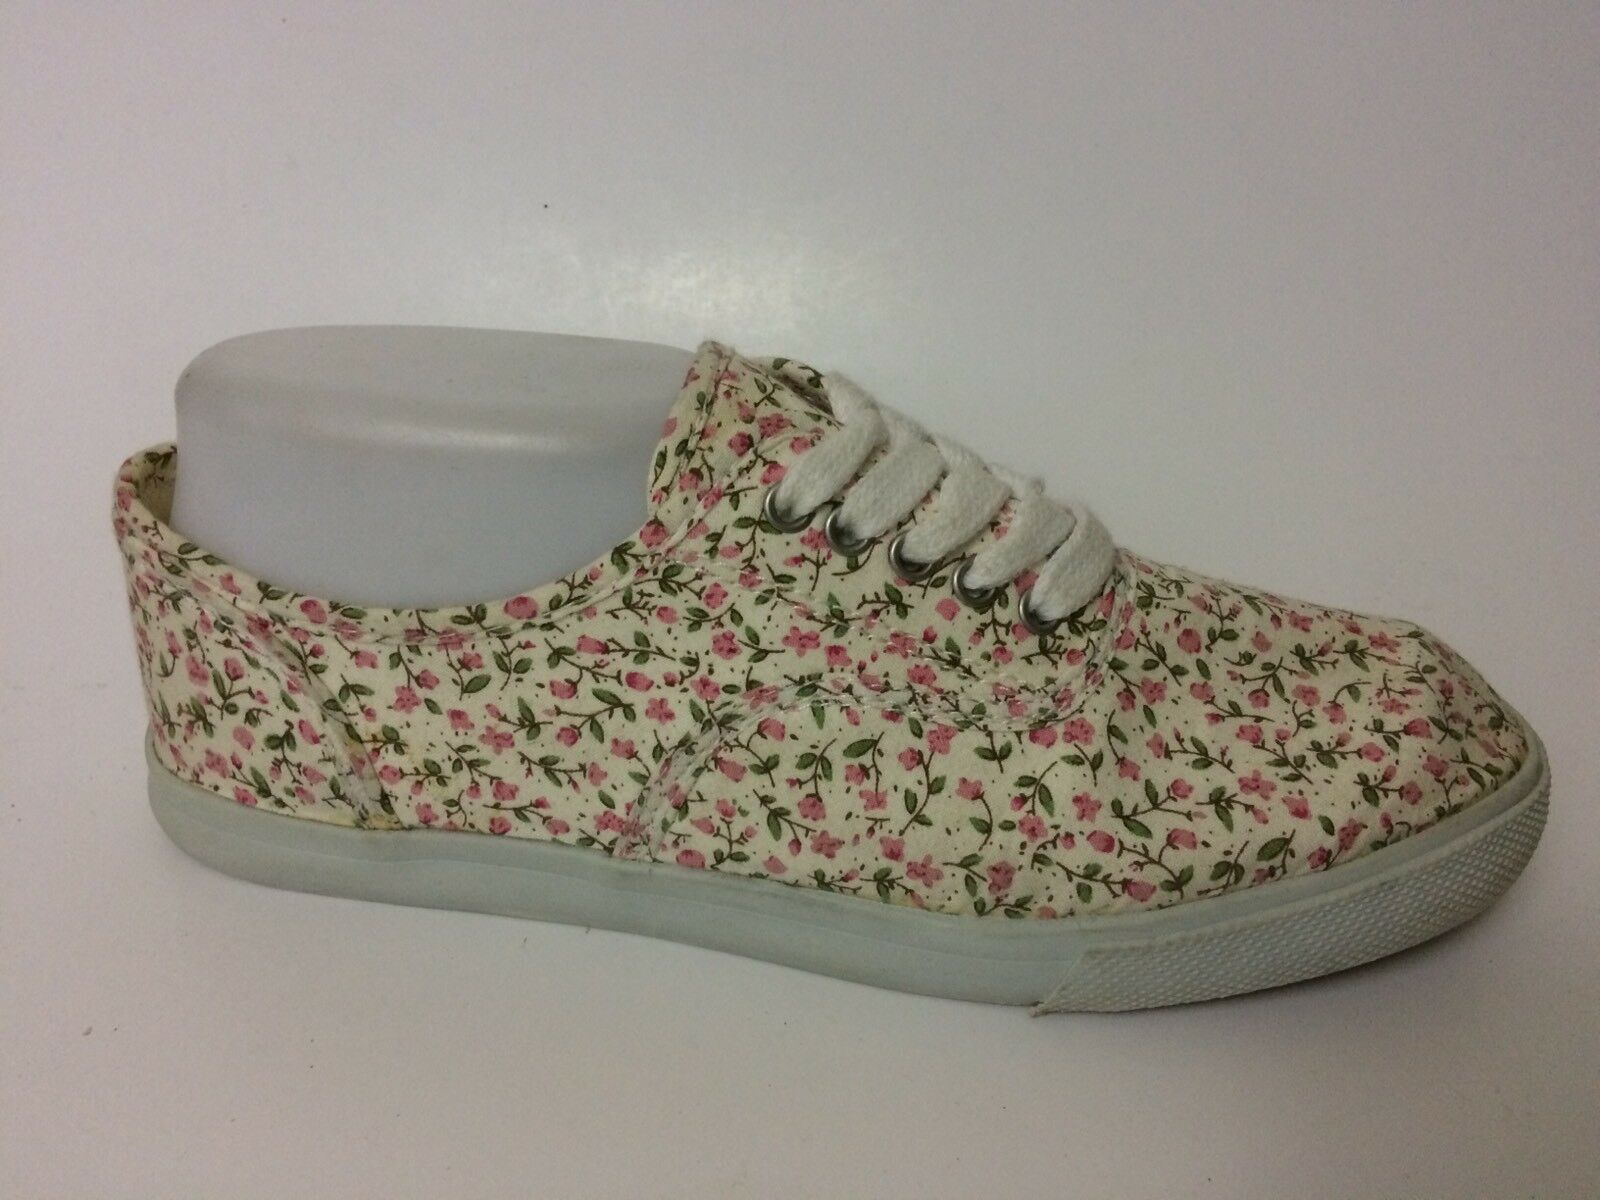 Mossimo Womens 6.5 M Pink Green Beige Shoe Floral Canvas Sneakers Casual Shoe Beige Classic 151a18